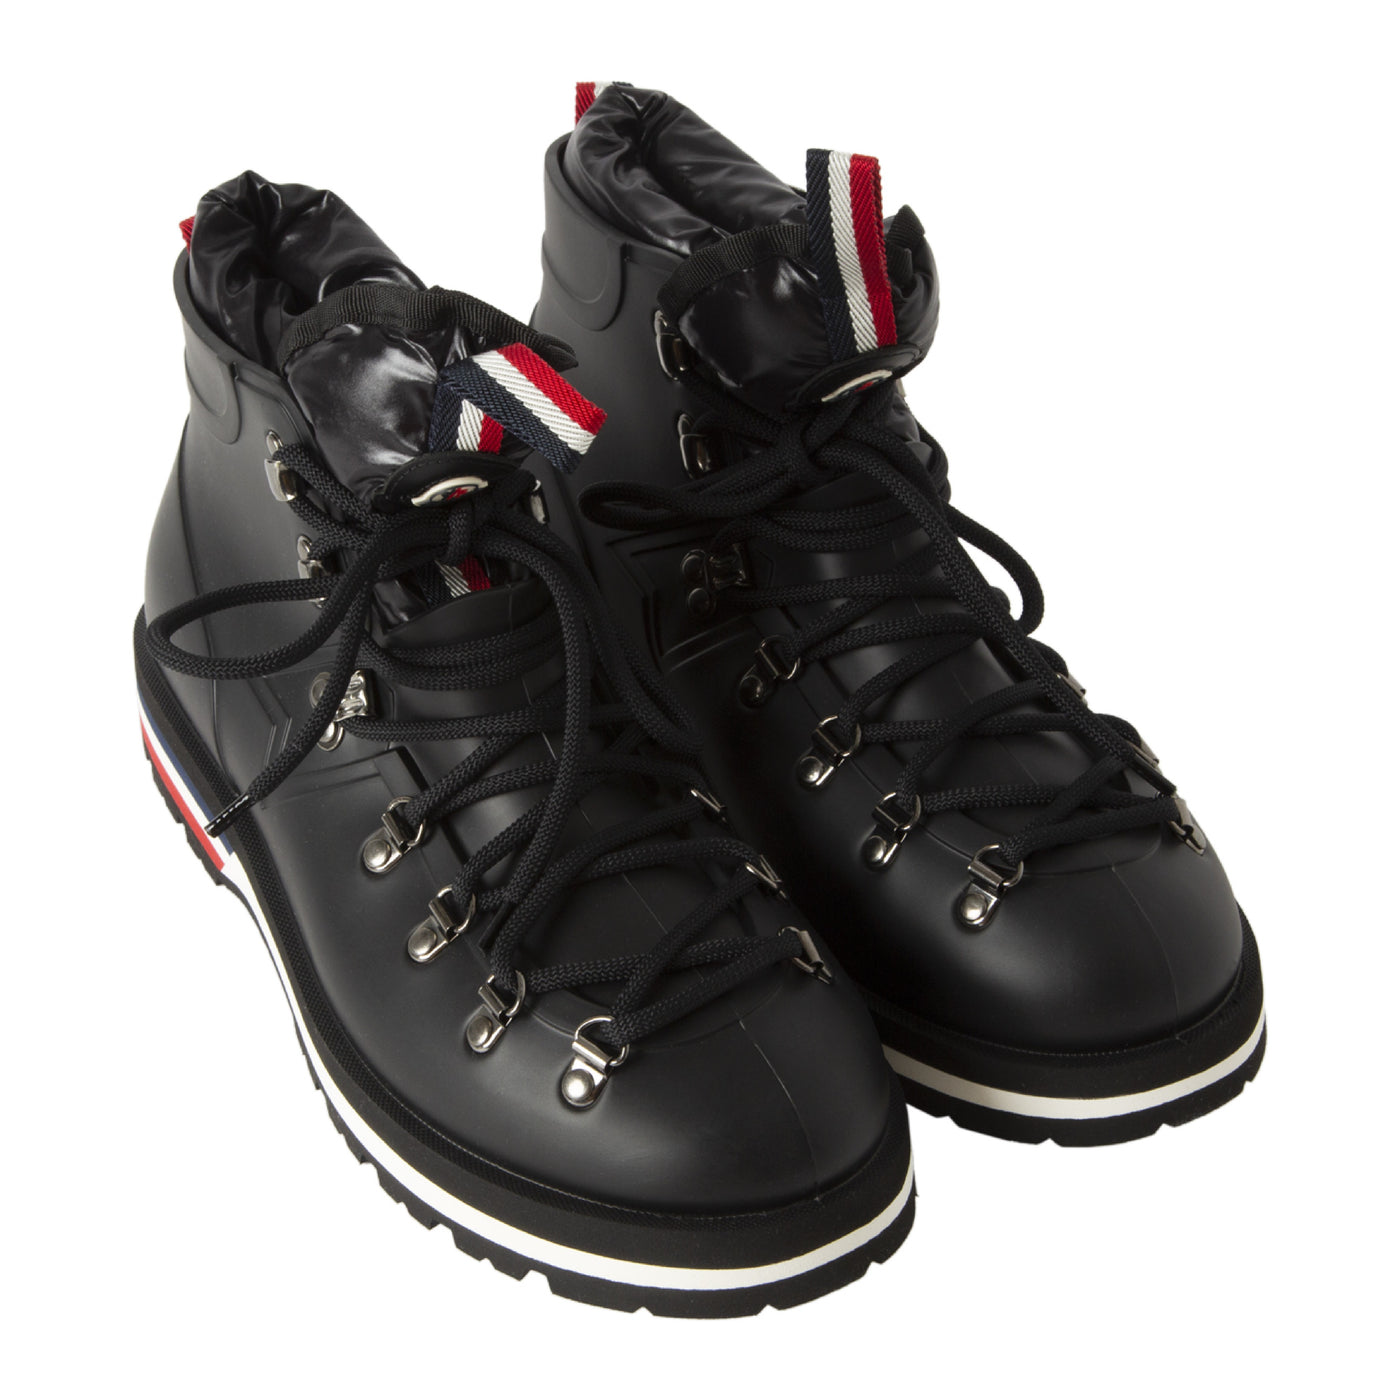 Load image into Gallery viewer, MONCLER HIKING BOOTS BLACK